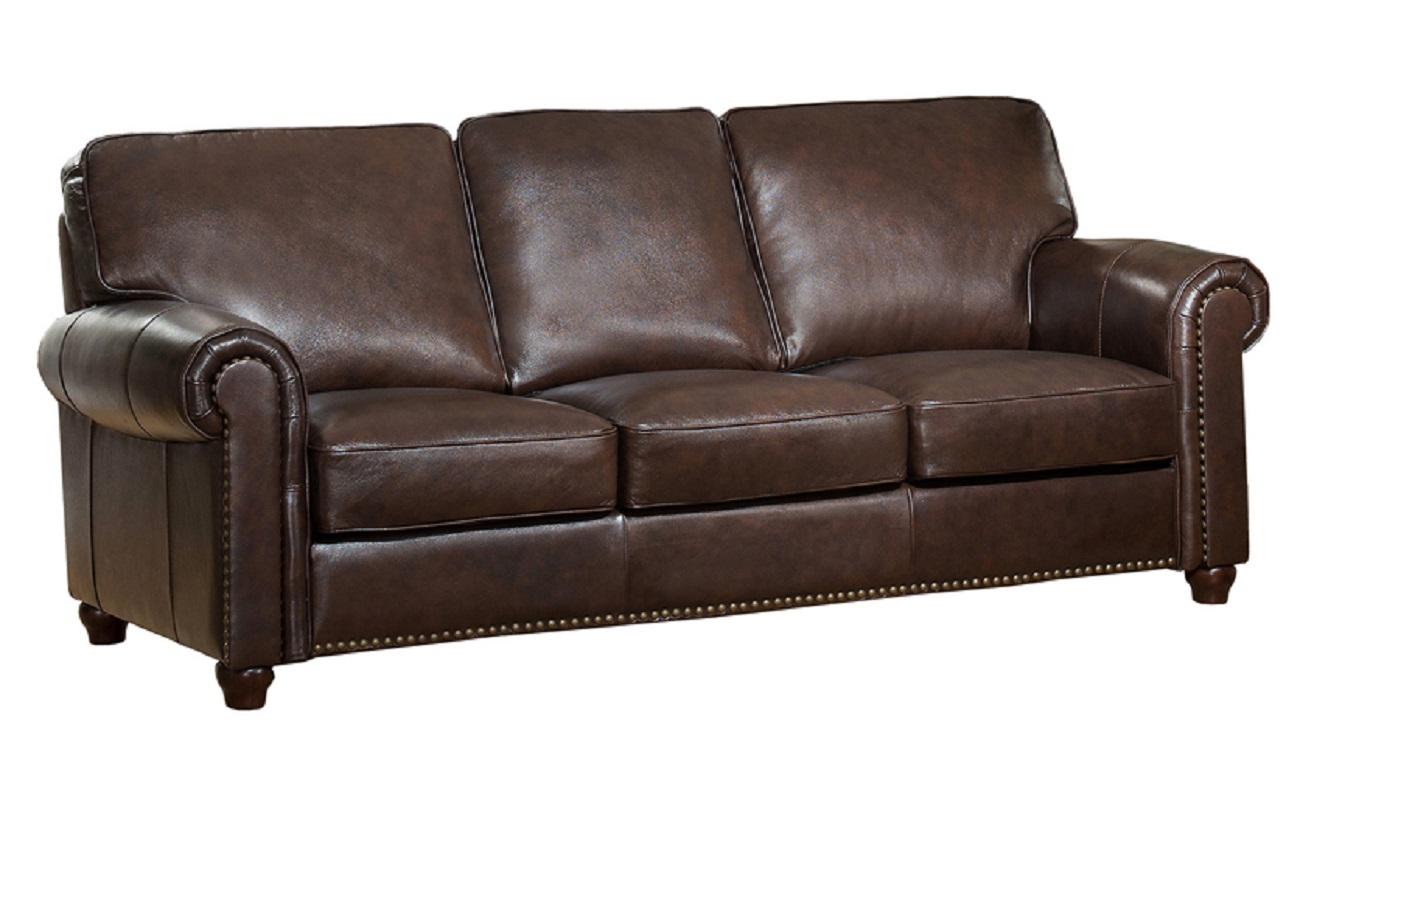 Jane Furniture Barbara Top Grain Dark Brown Leather Sofa